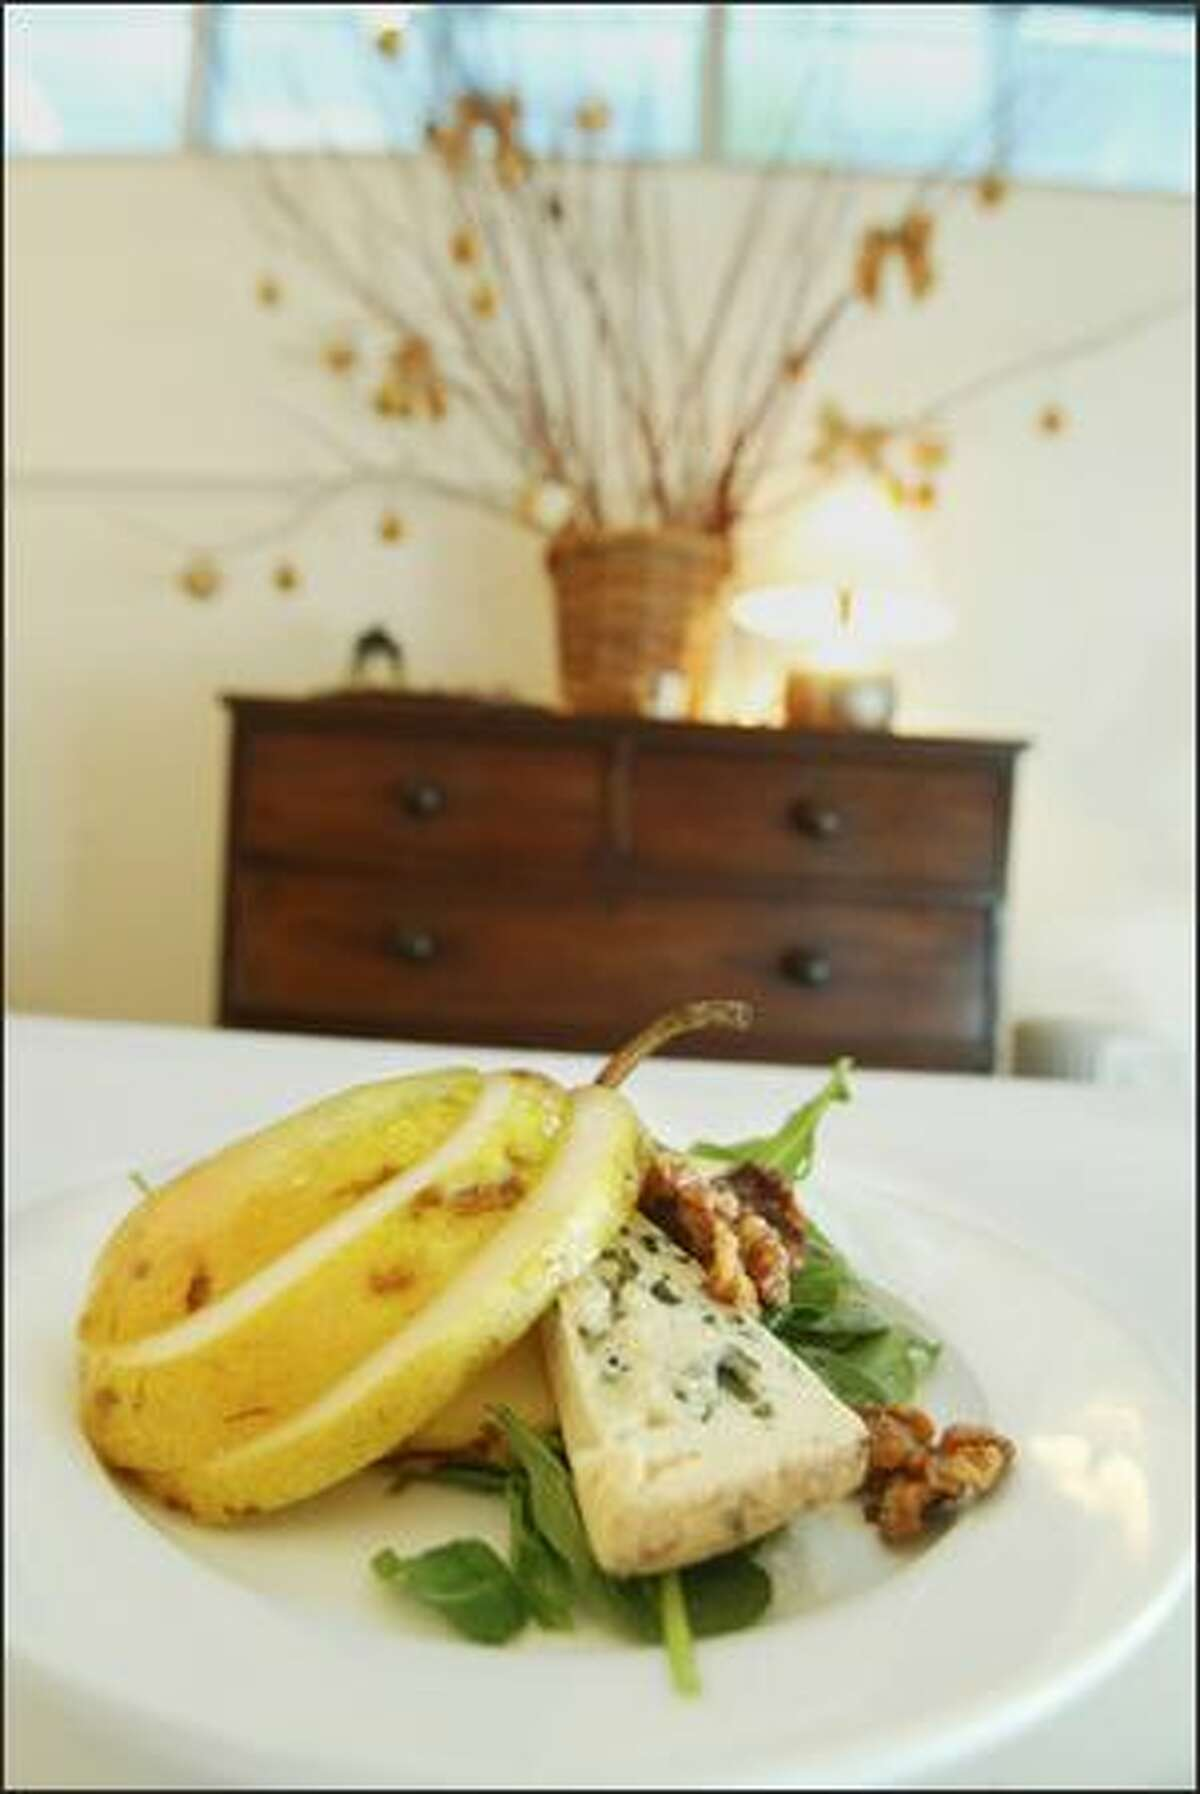 Erickson cuts pears into loose rounds for this mixed-green salad with bleu d'auvergne cheese and roasted walnuts.